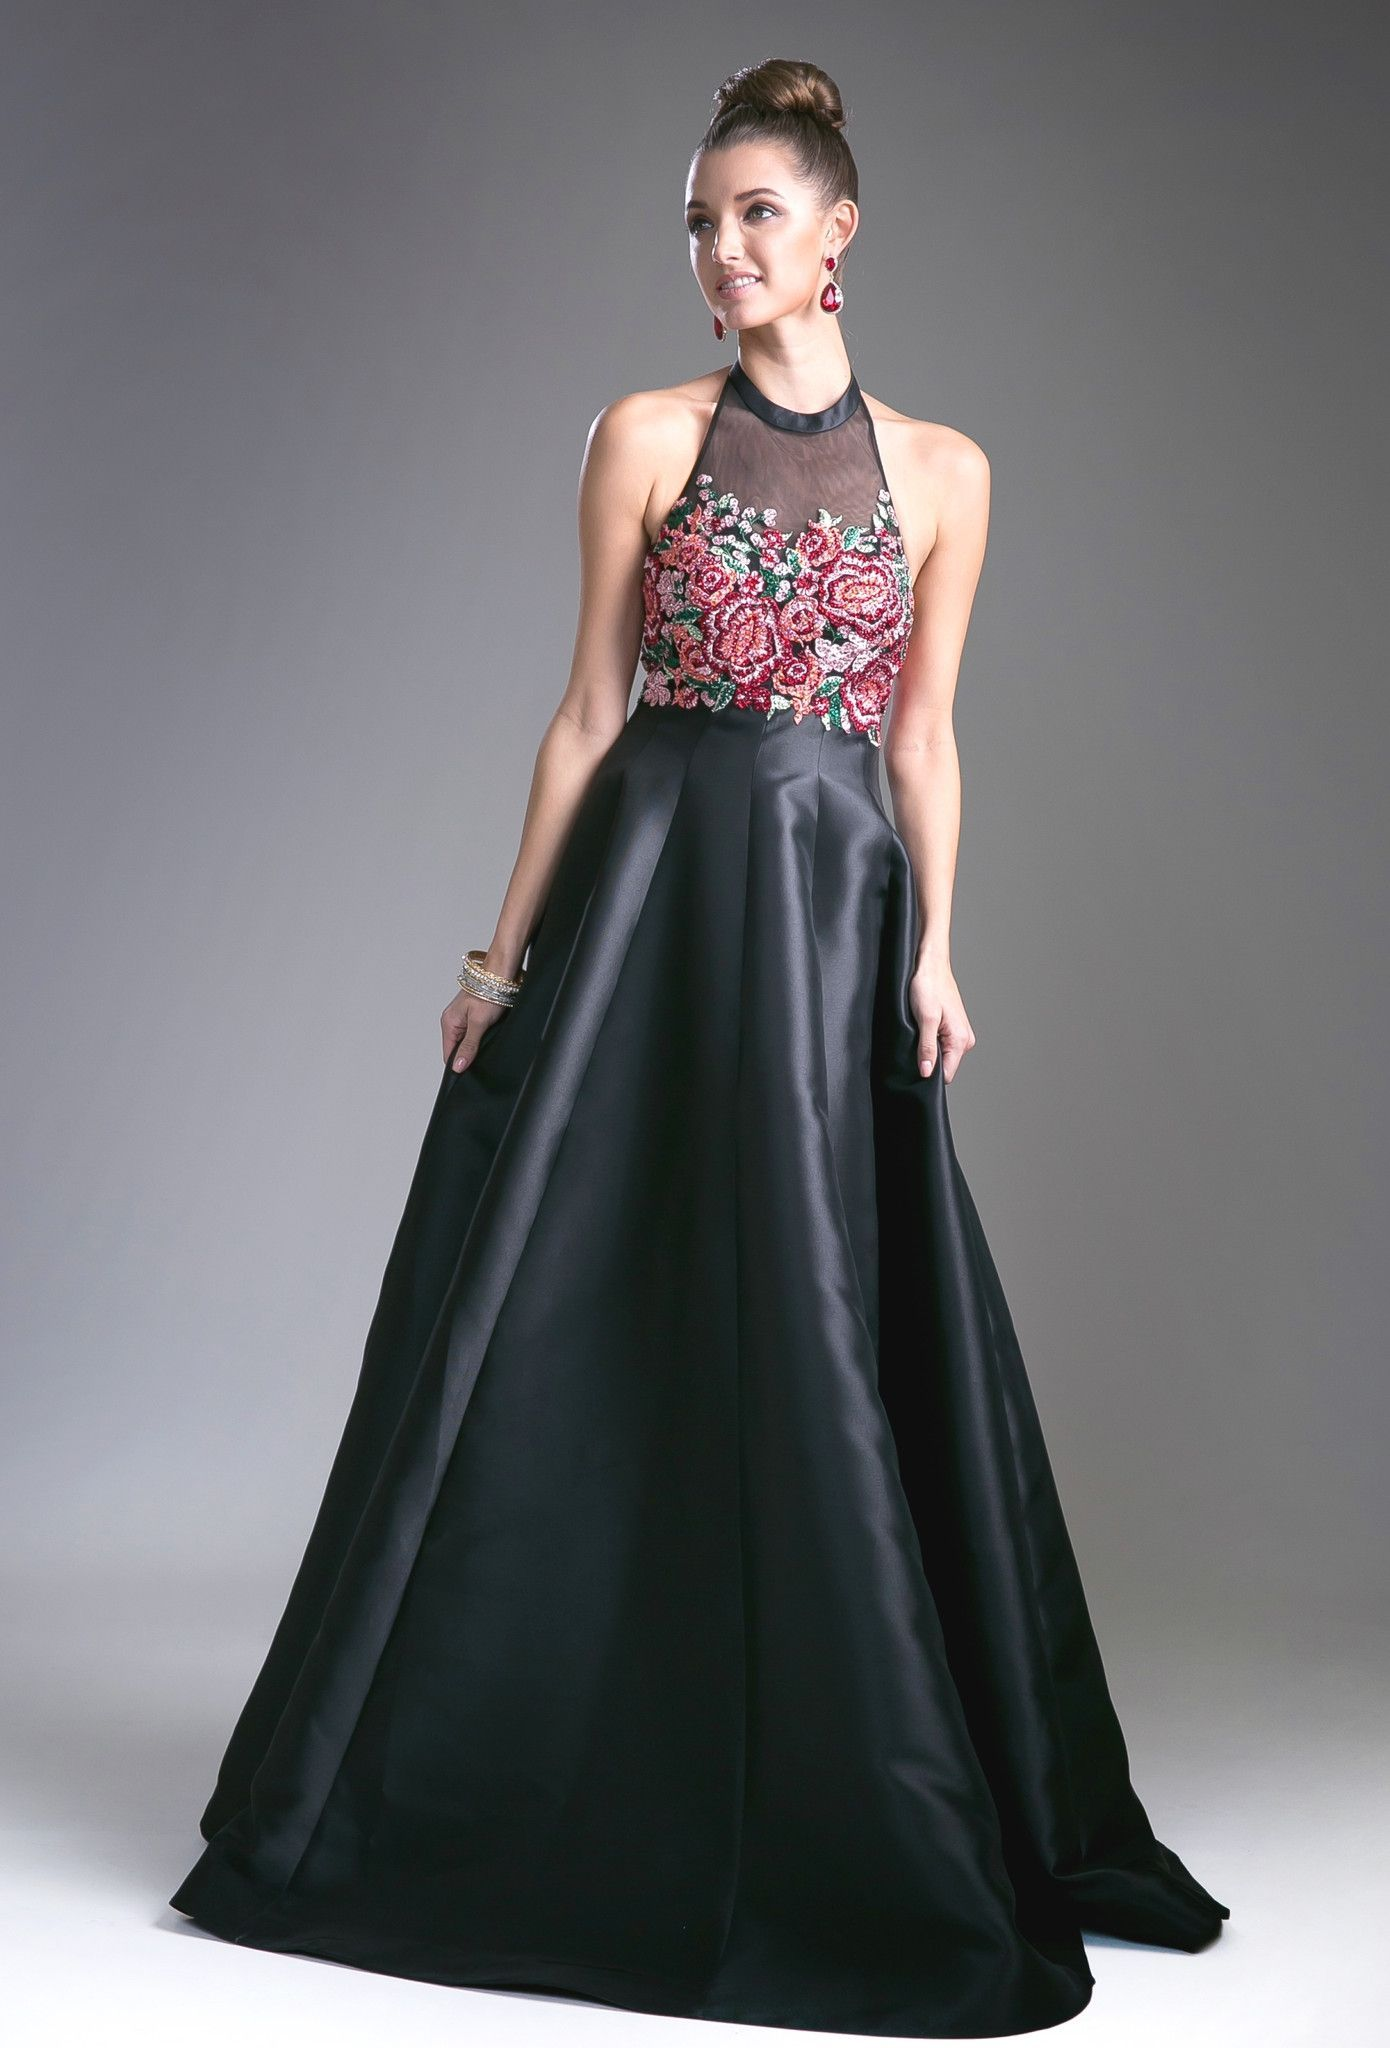 Black halter evening dress with floral top by cinderella divine